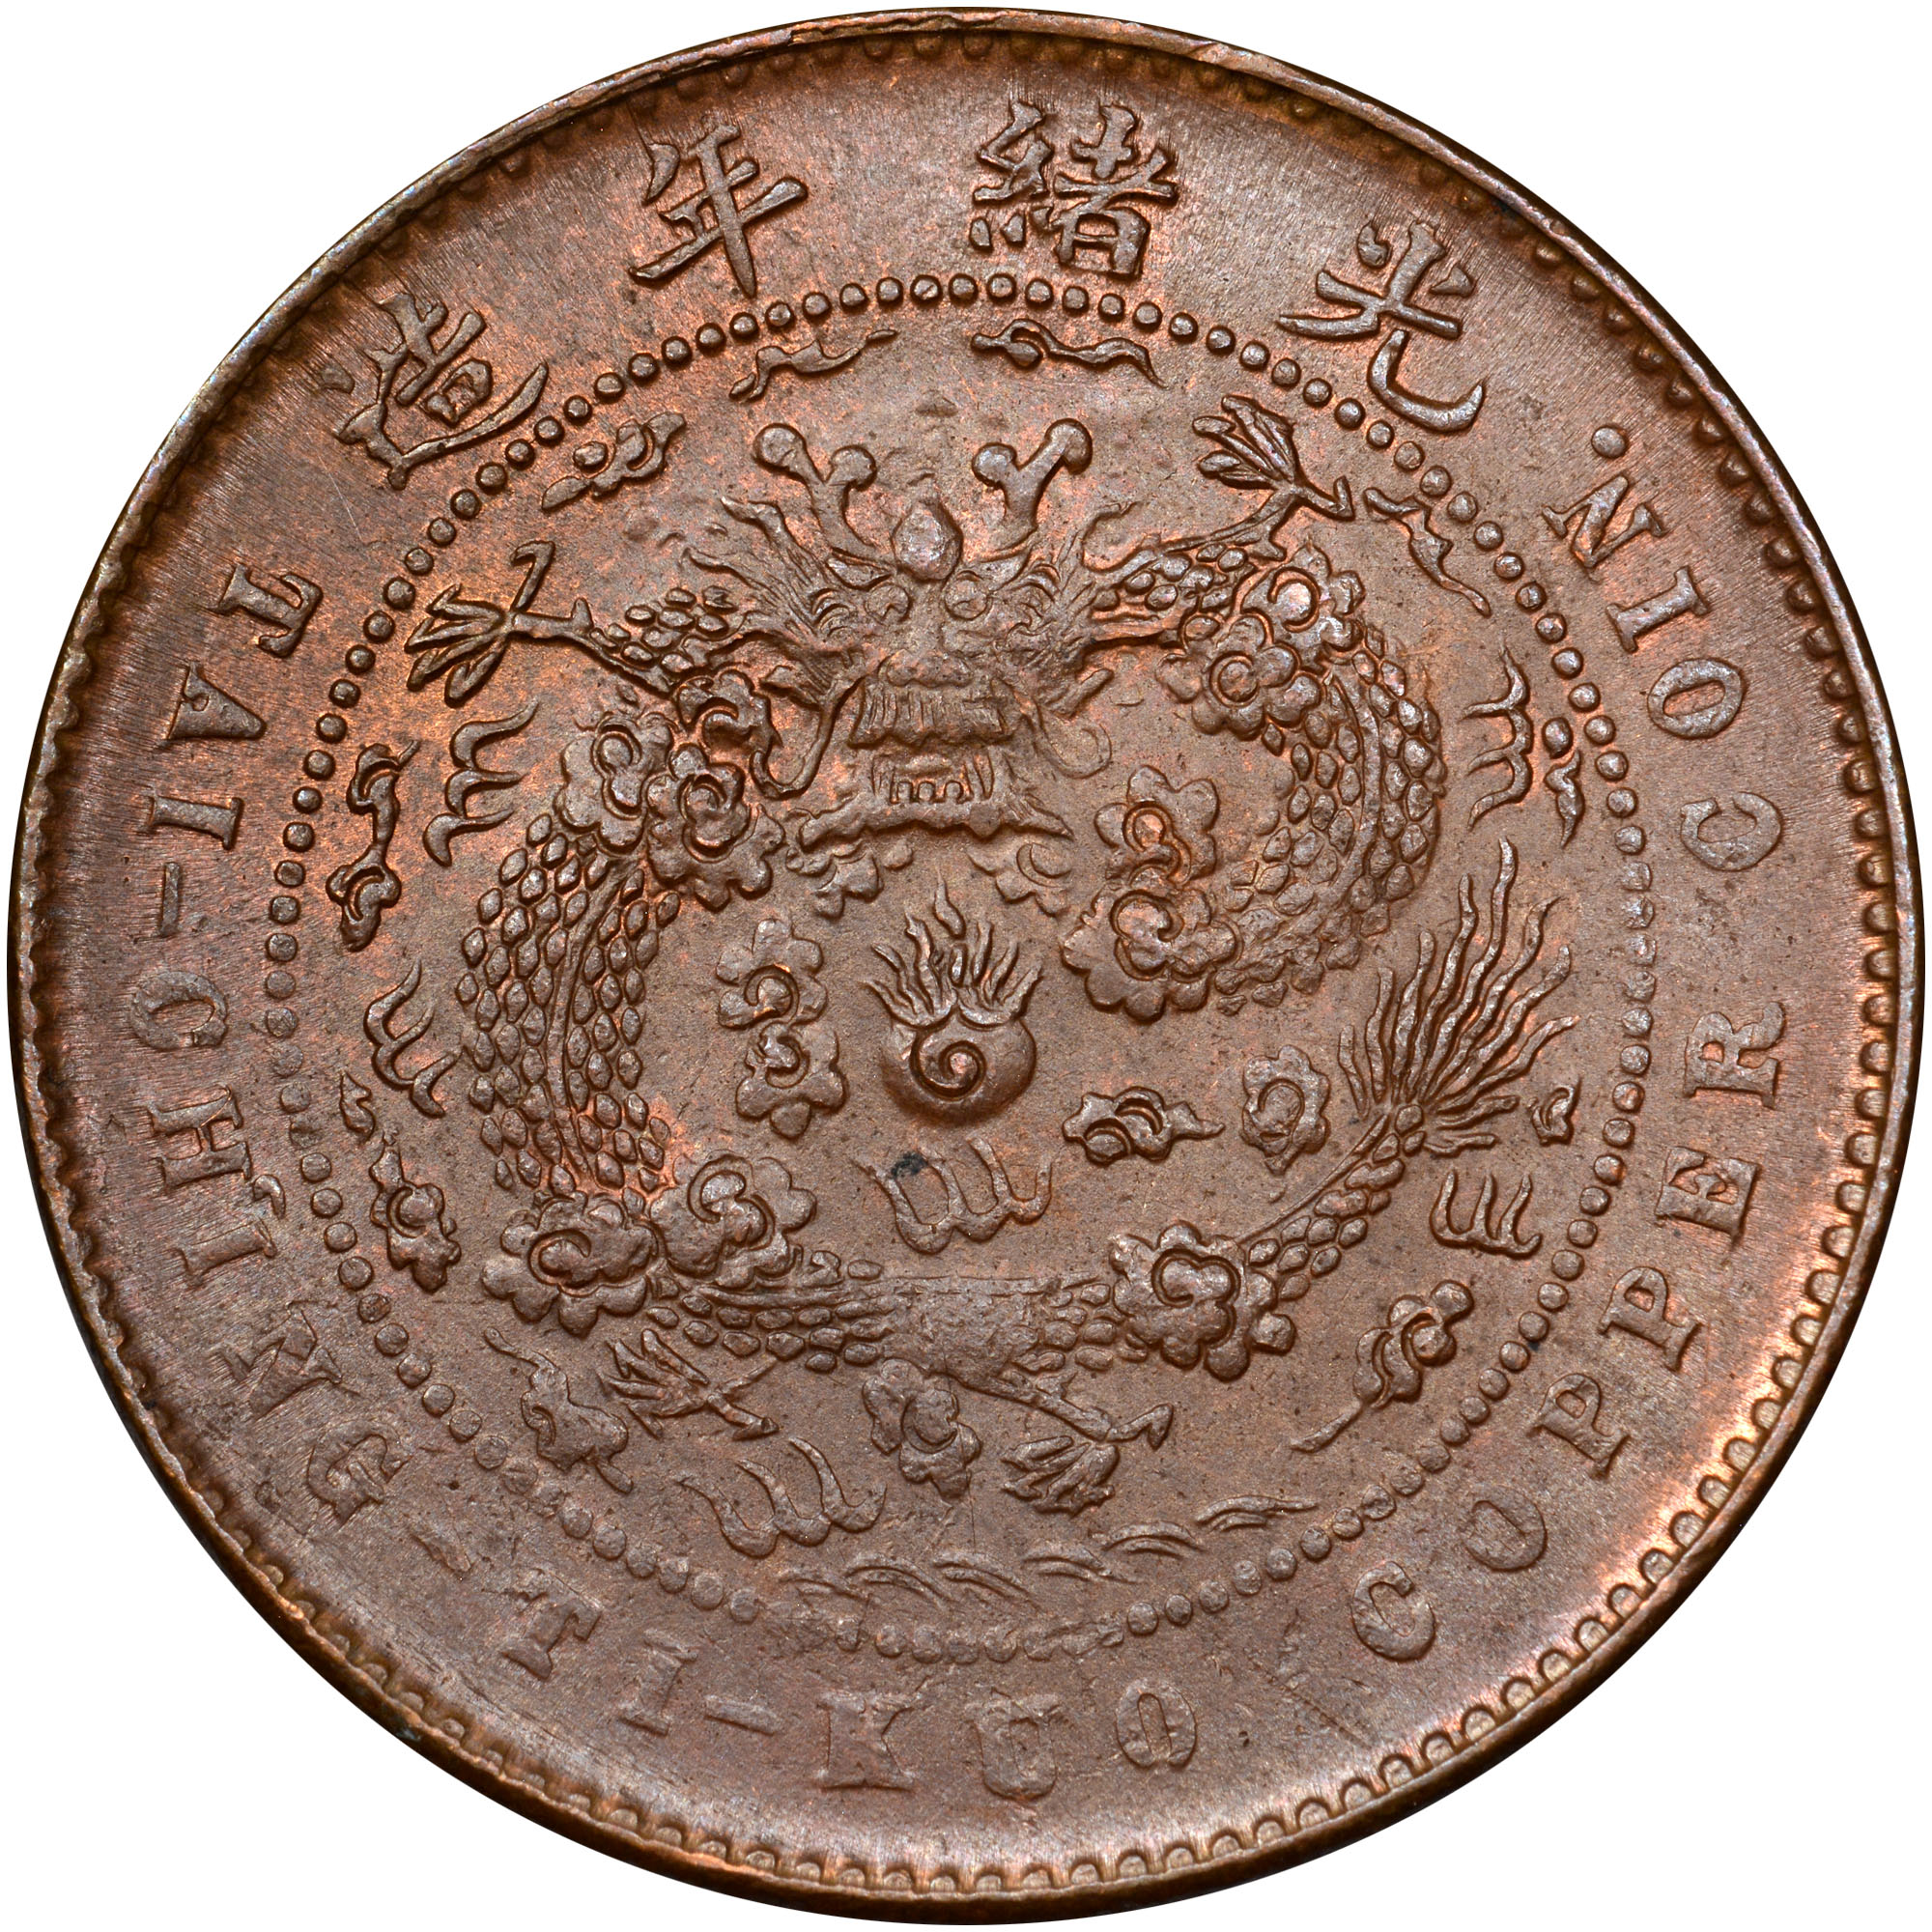 1905-1906 China EMPIRE 5 Cash reverse